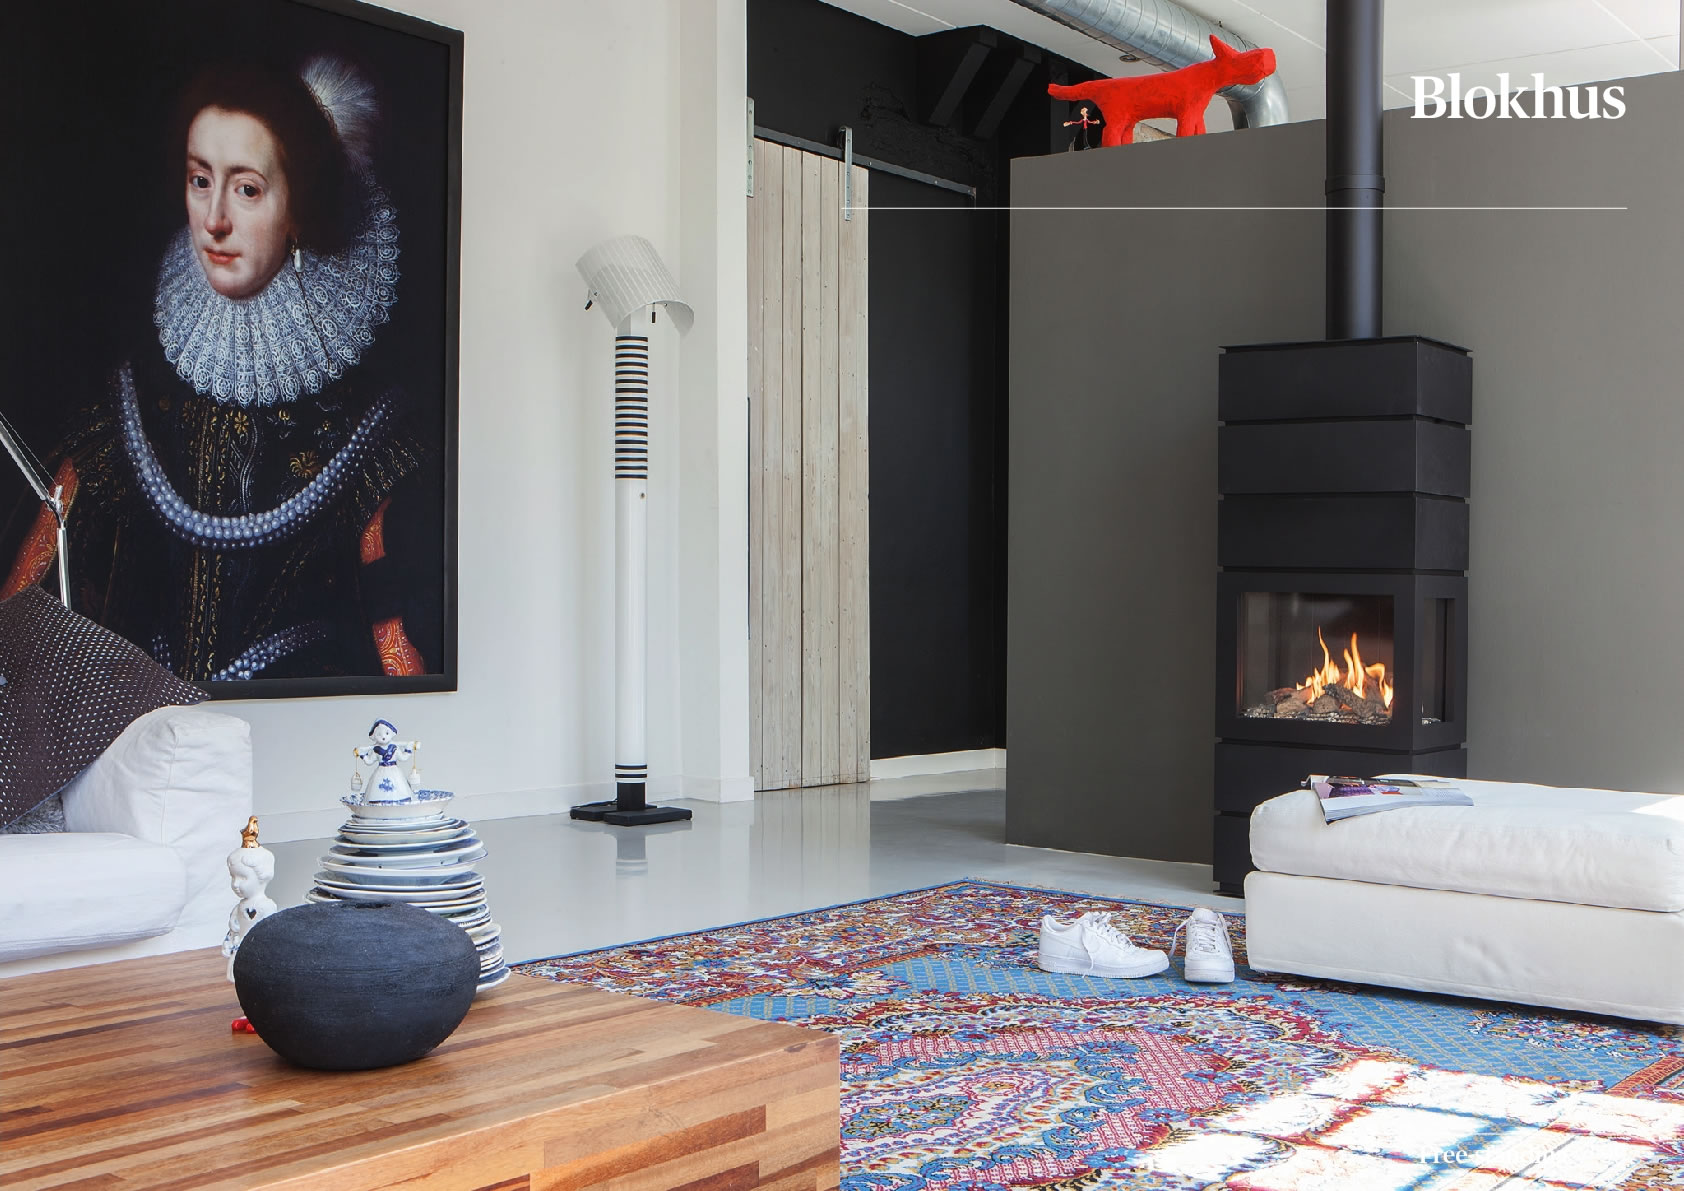 Faber Natural Gas Fireplaces - Blokhus